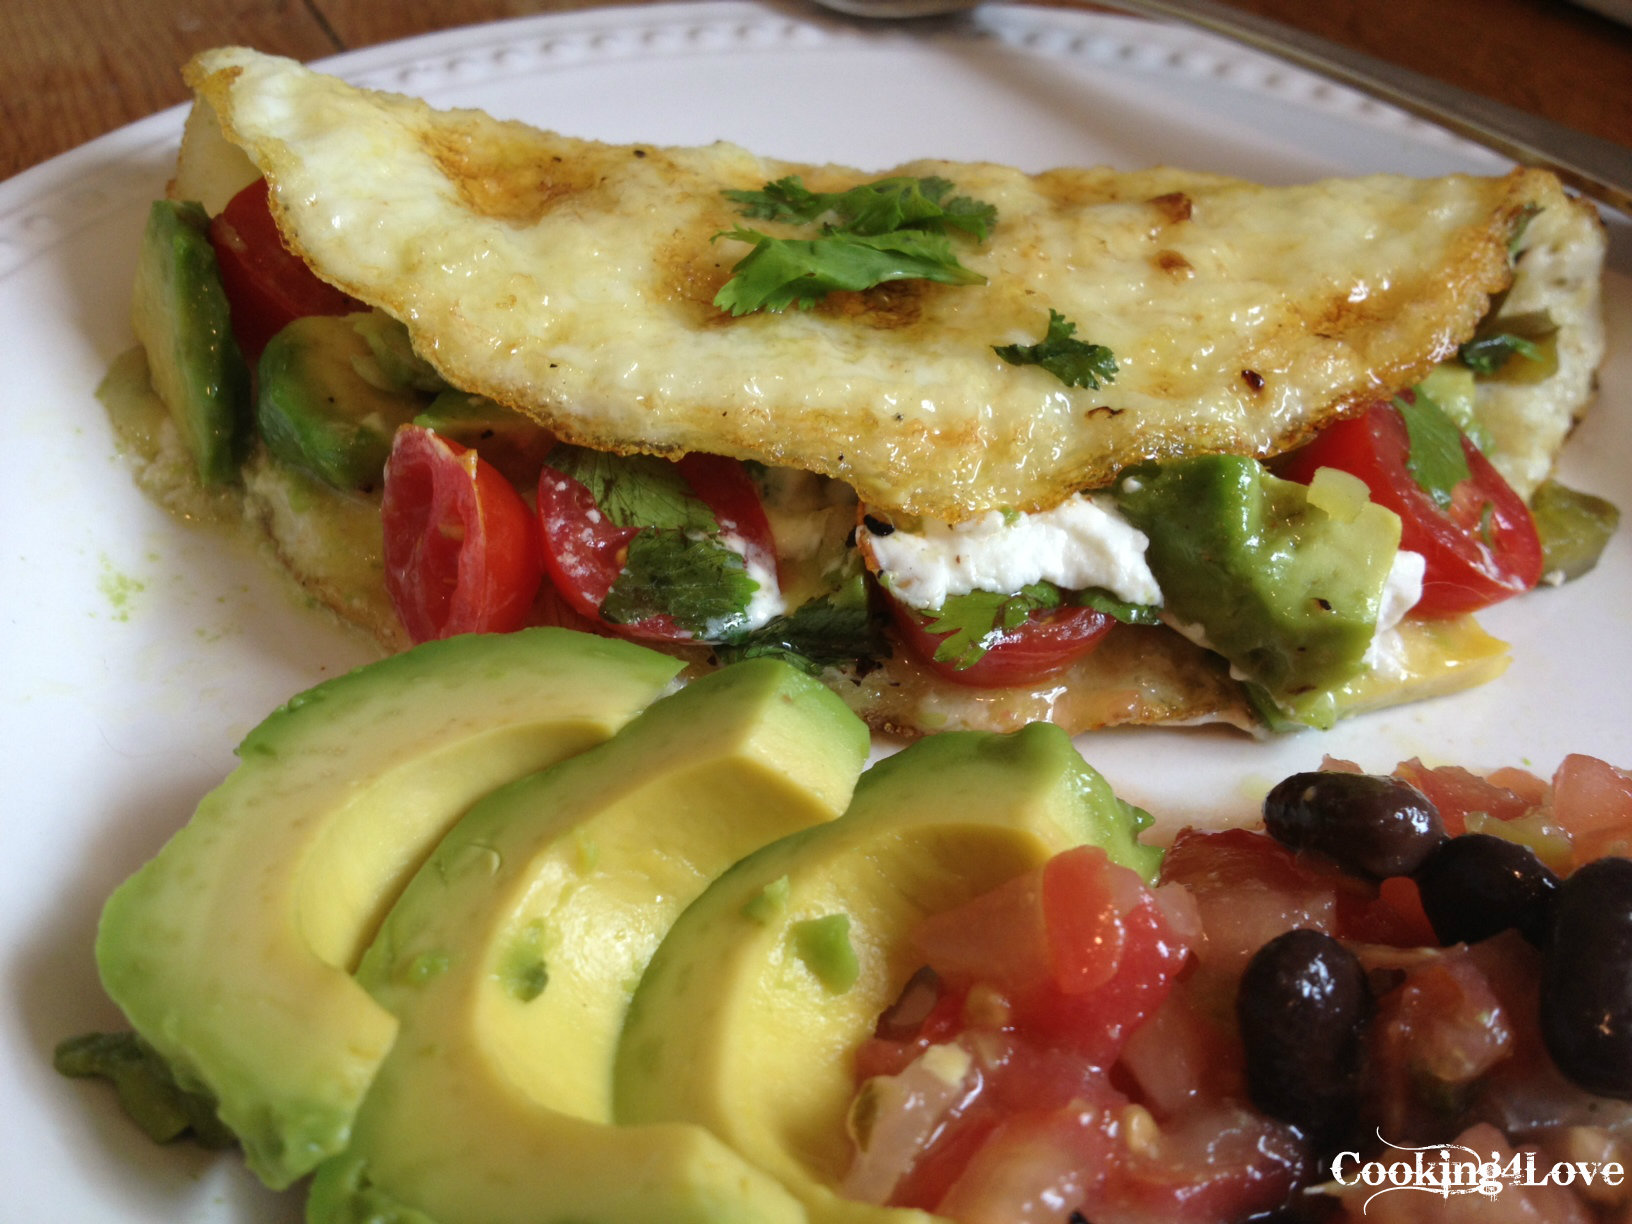 Mexican Egg White Omelet With Goat Cheese | Cooking For Love